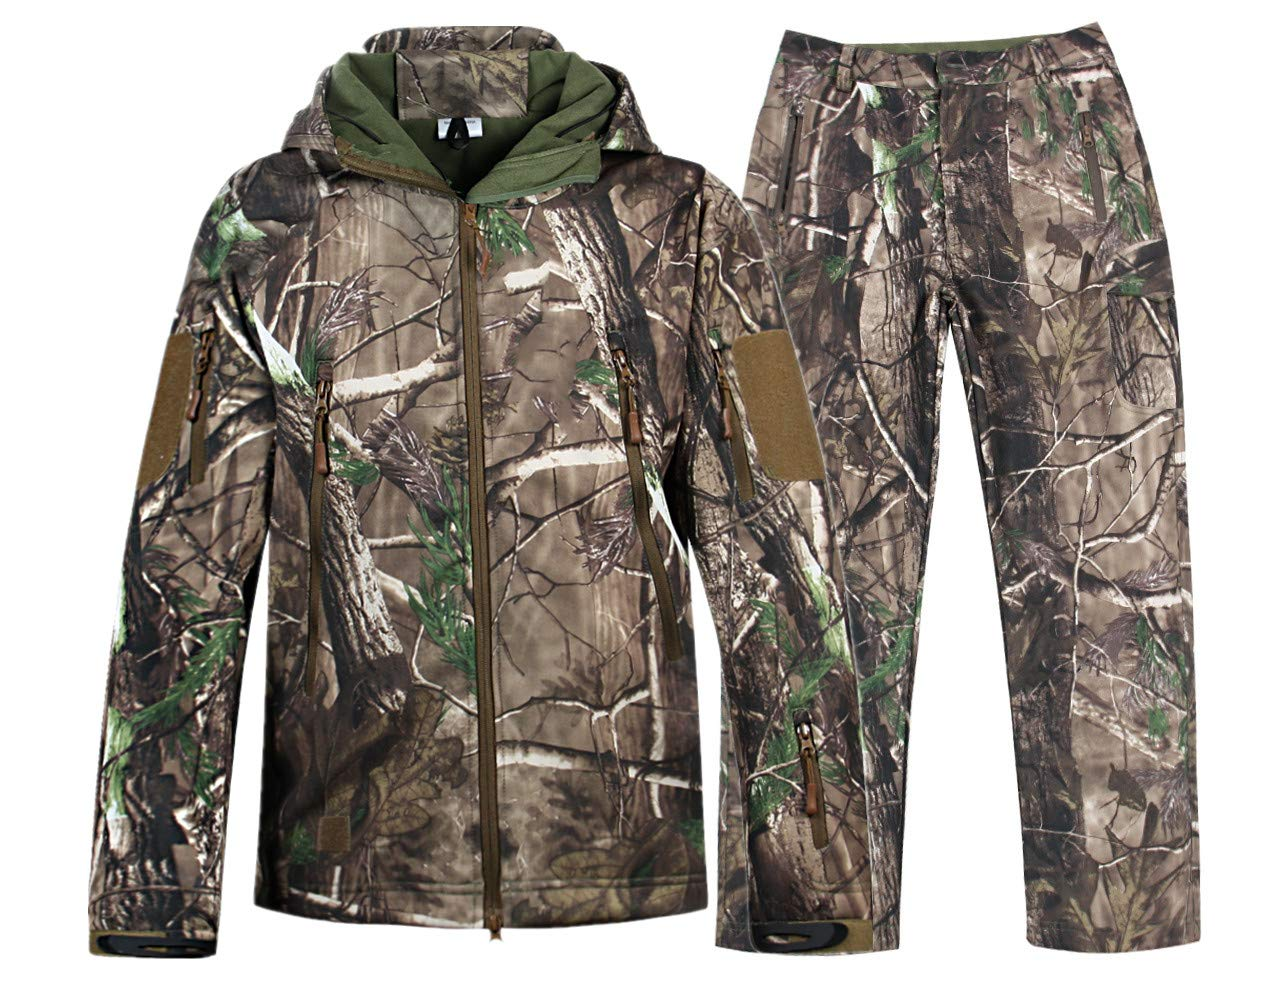 NEW VIEW Hunting Jacket Waterproof Hunting Camouflage Hoodie for Men,Hunting Suit (Jacket and Pants-1, US XXL=Tag XXXL) by NEW VIEW